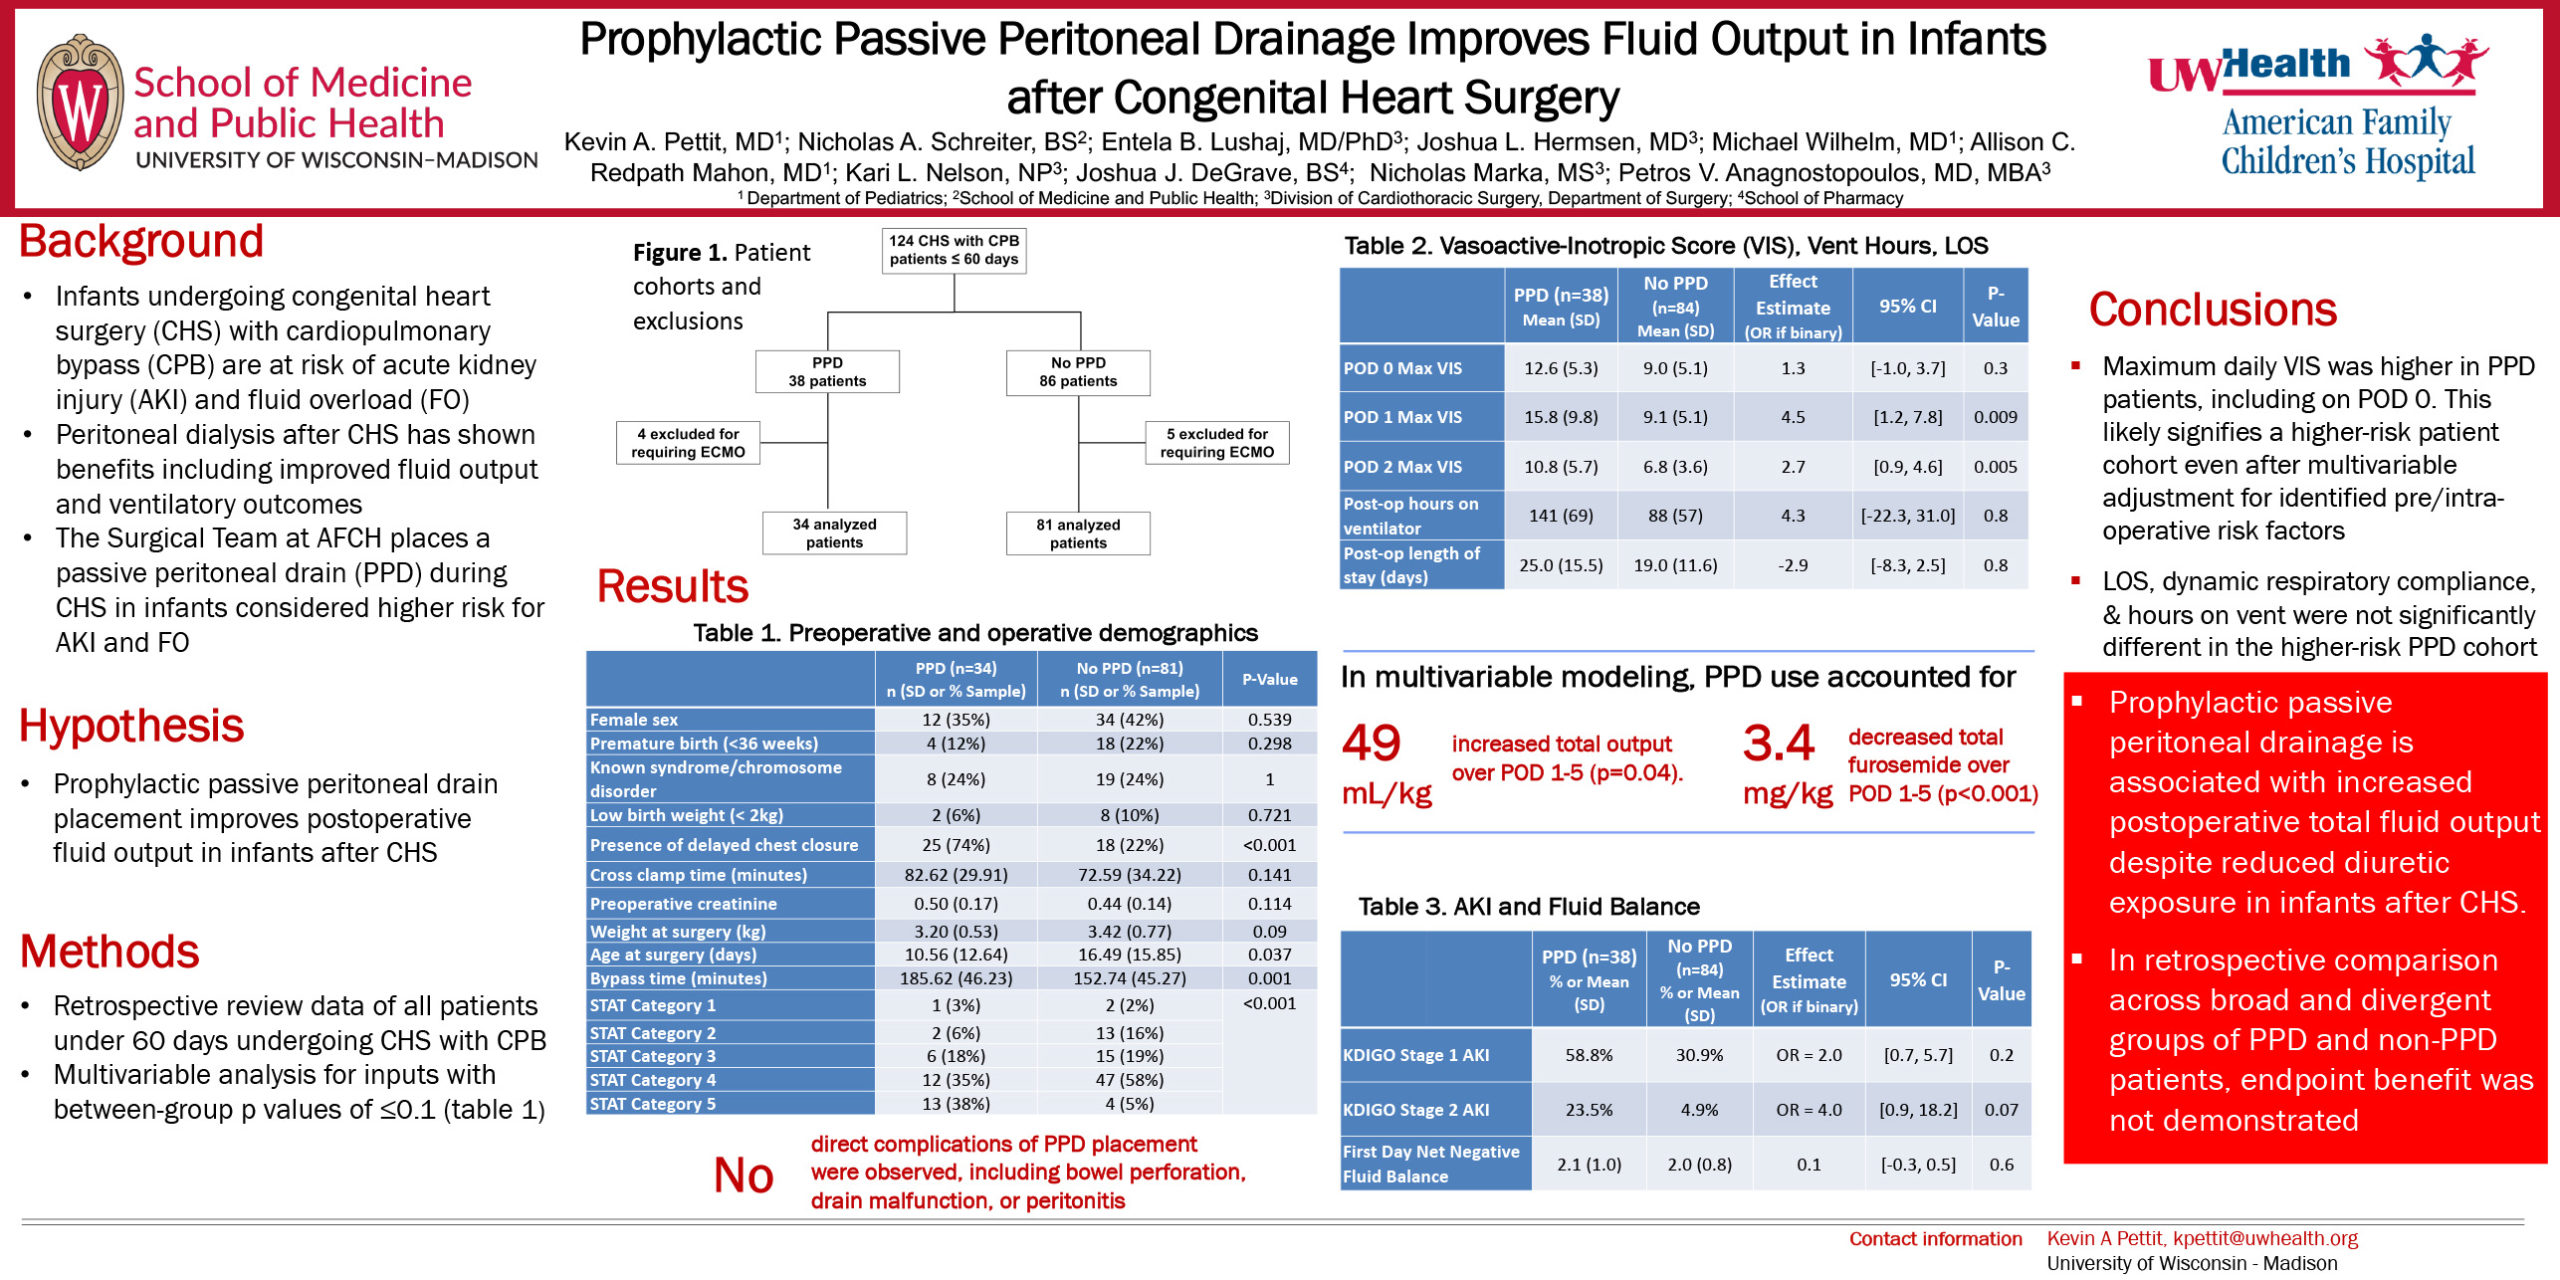 Prophylactic Peritoneal Drainage Improves Fluid Output after Congenital Heart Surgery poster image